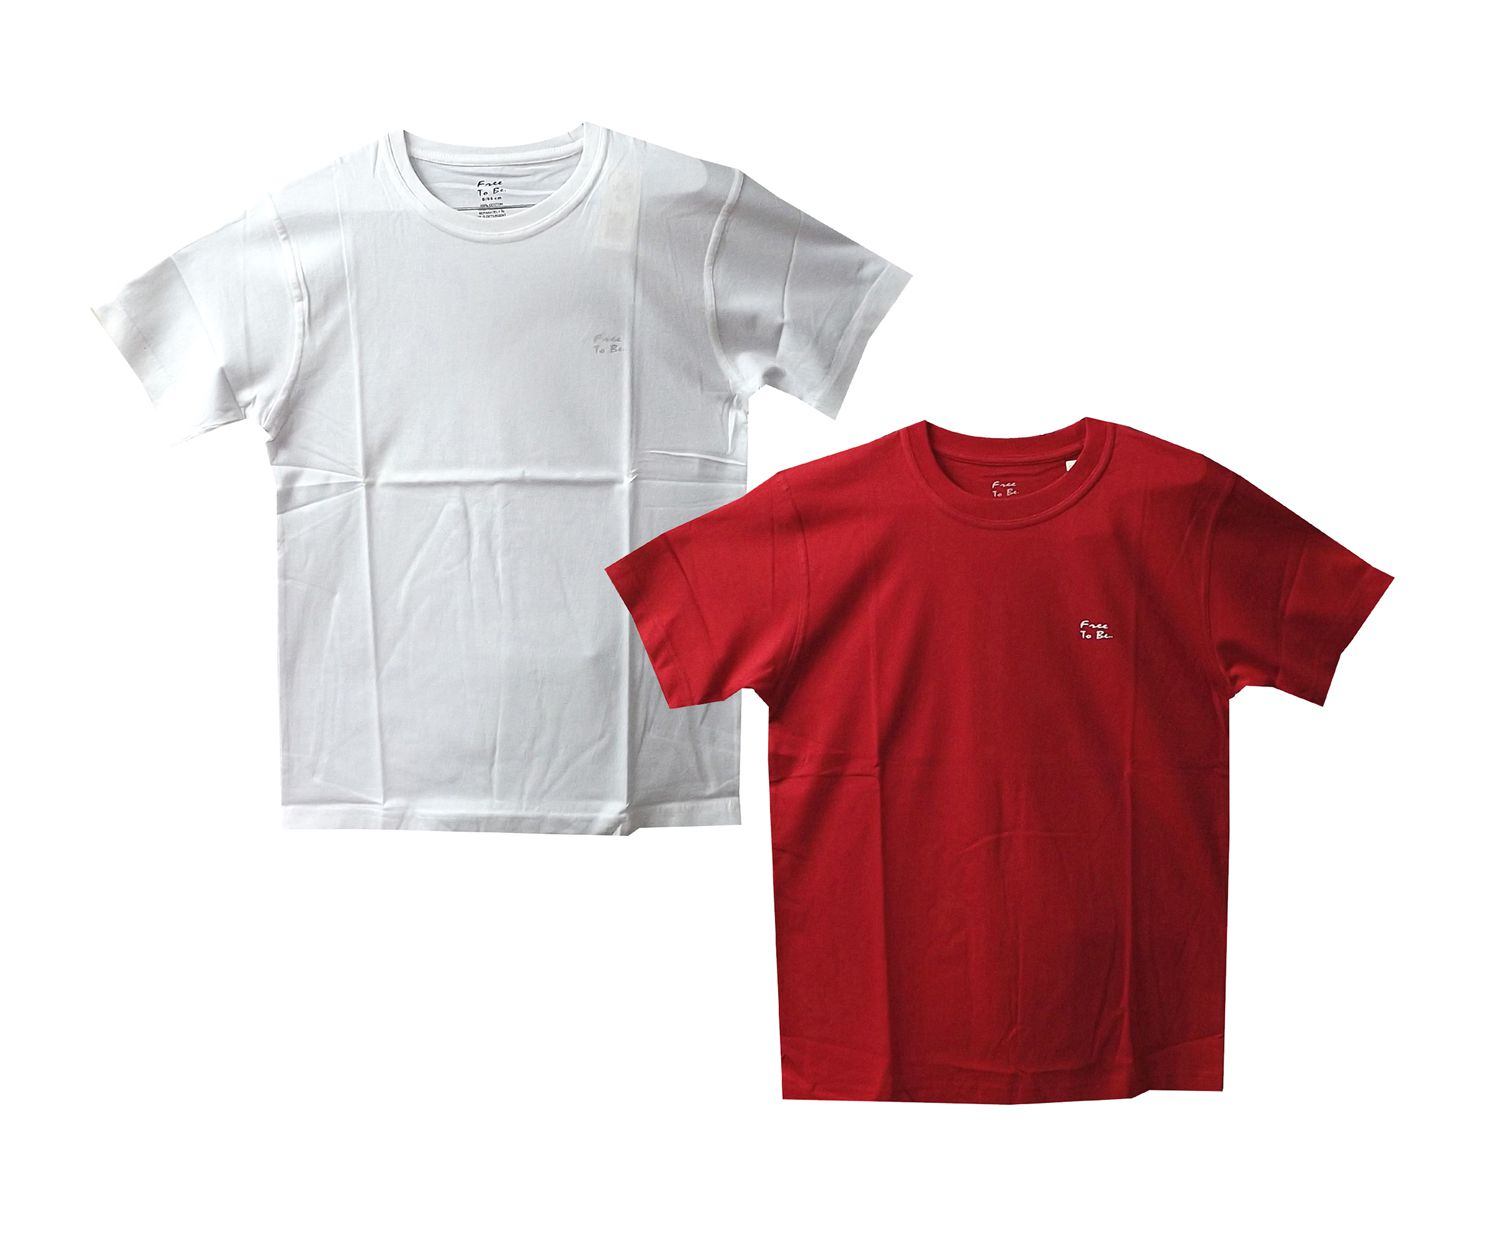 Governer's Drive Multi Round T-Shirt Pack of 2